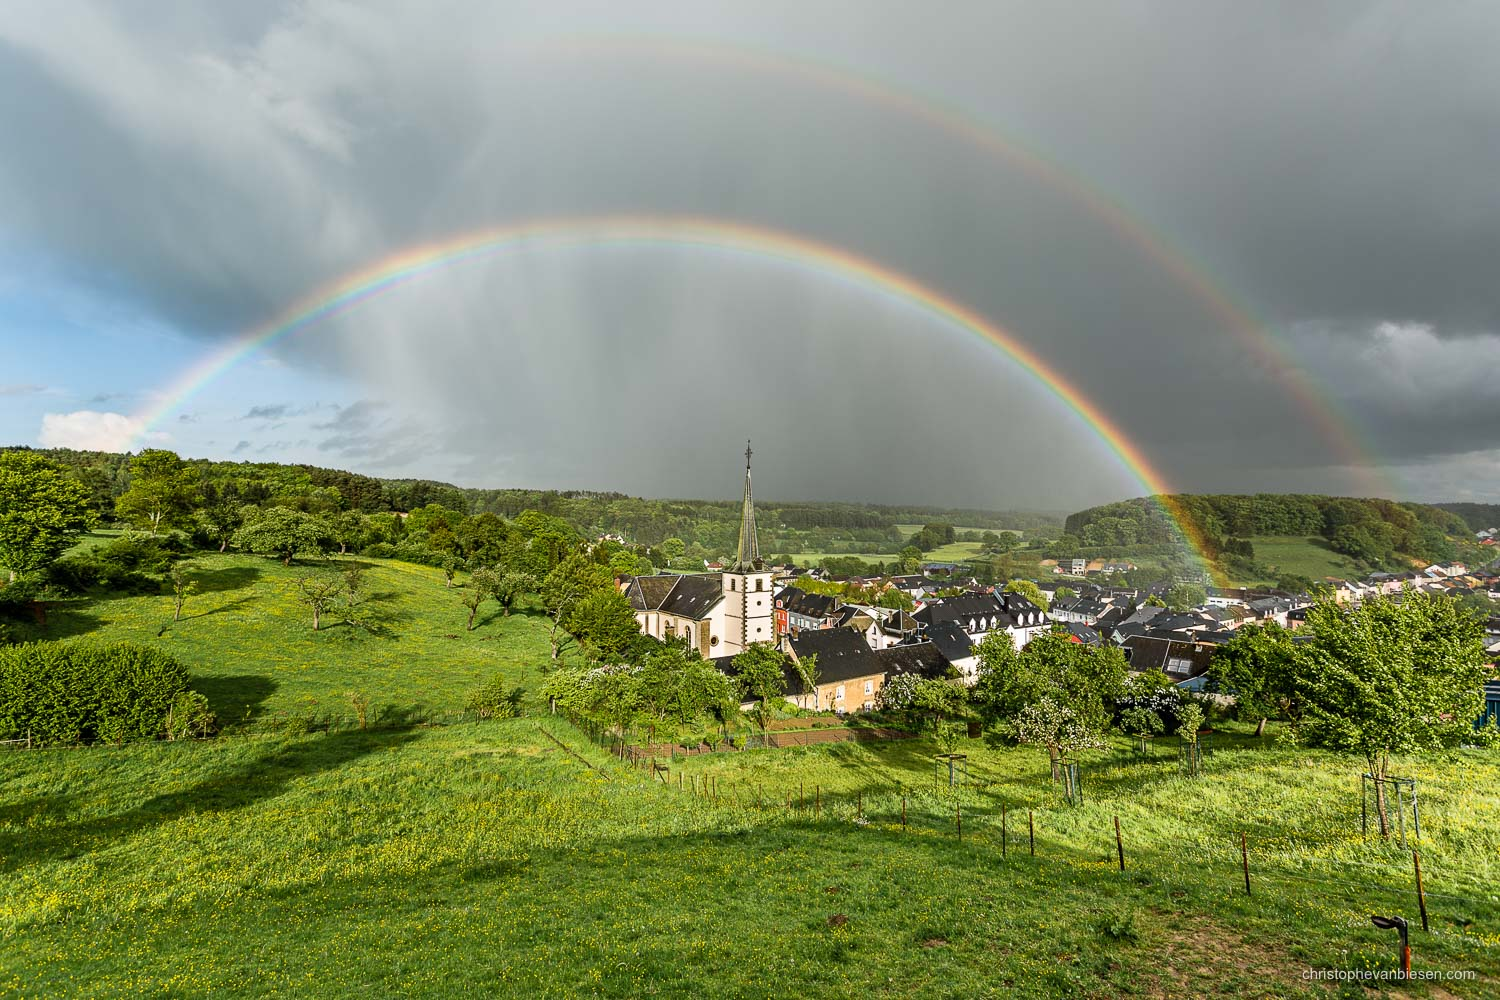 Top 25 photos made in Luxembourg - Rainbow over a typical village in Luxembourg